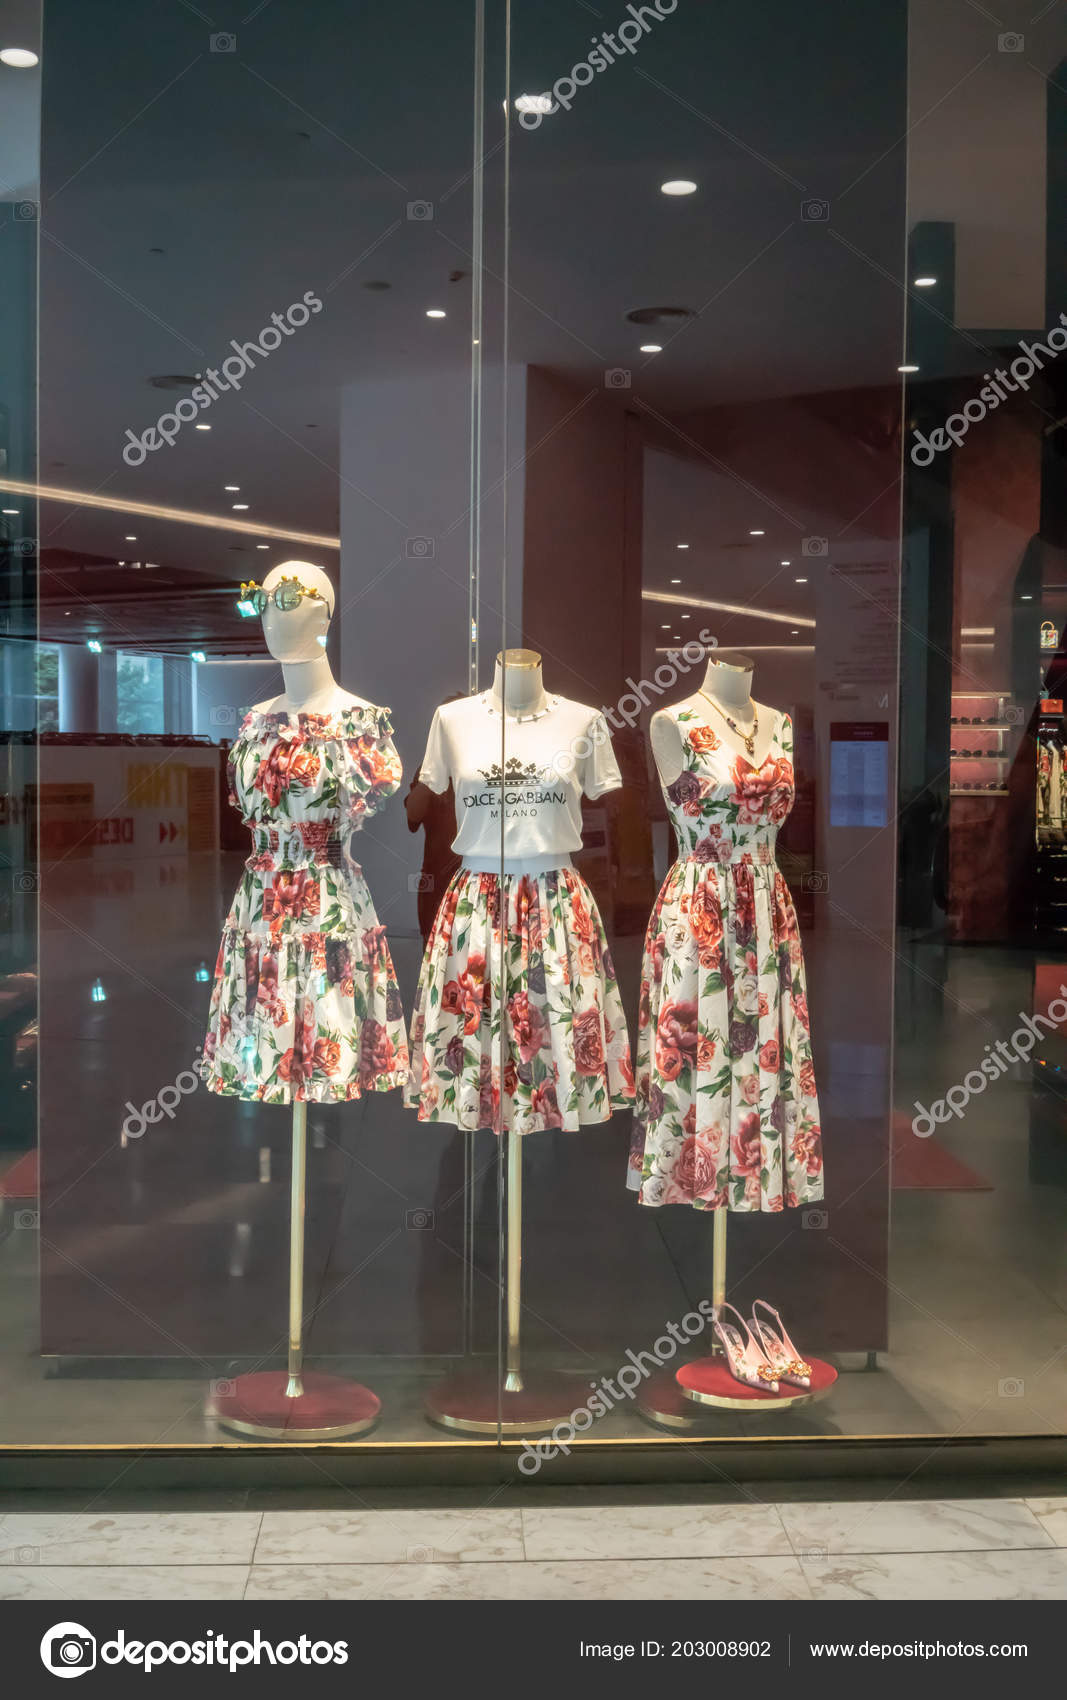 1381b67746812 ... Thailand, Jun 29, 2018 : Standing mannequins in casual flower dress at  the front window display of the luxury store.– Stock Editorial Photography